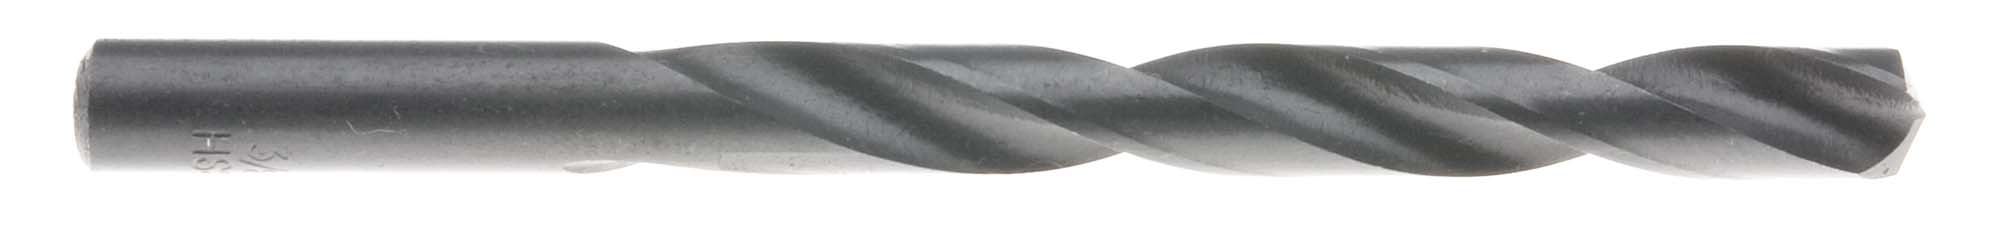 "T (.358"") Heavy Duty Split Point Jobber Drill Bit, High Speed Steel"